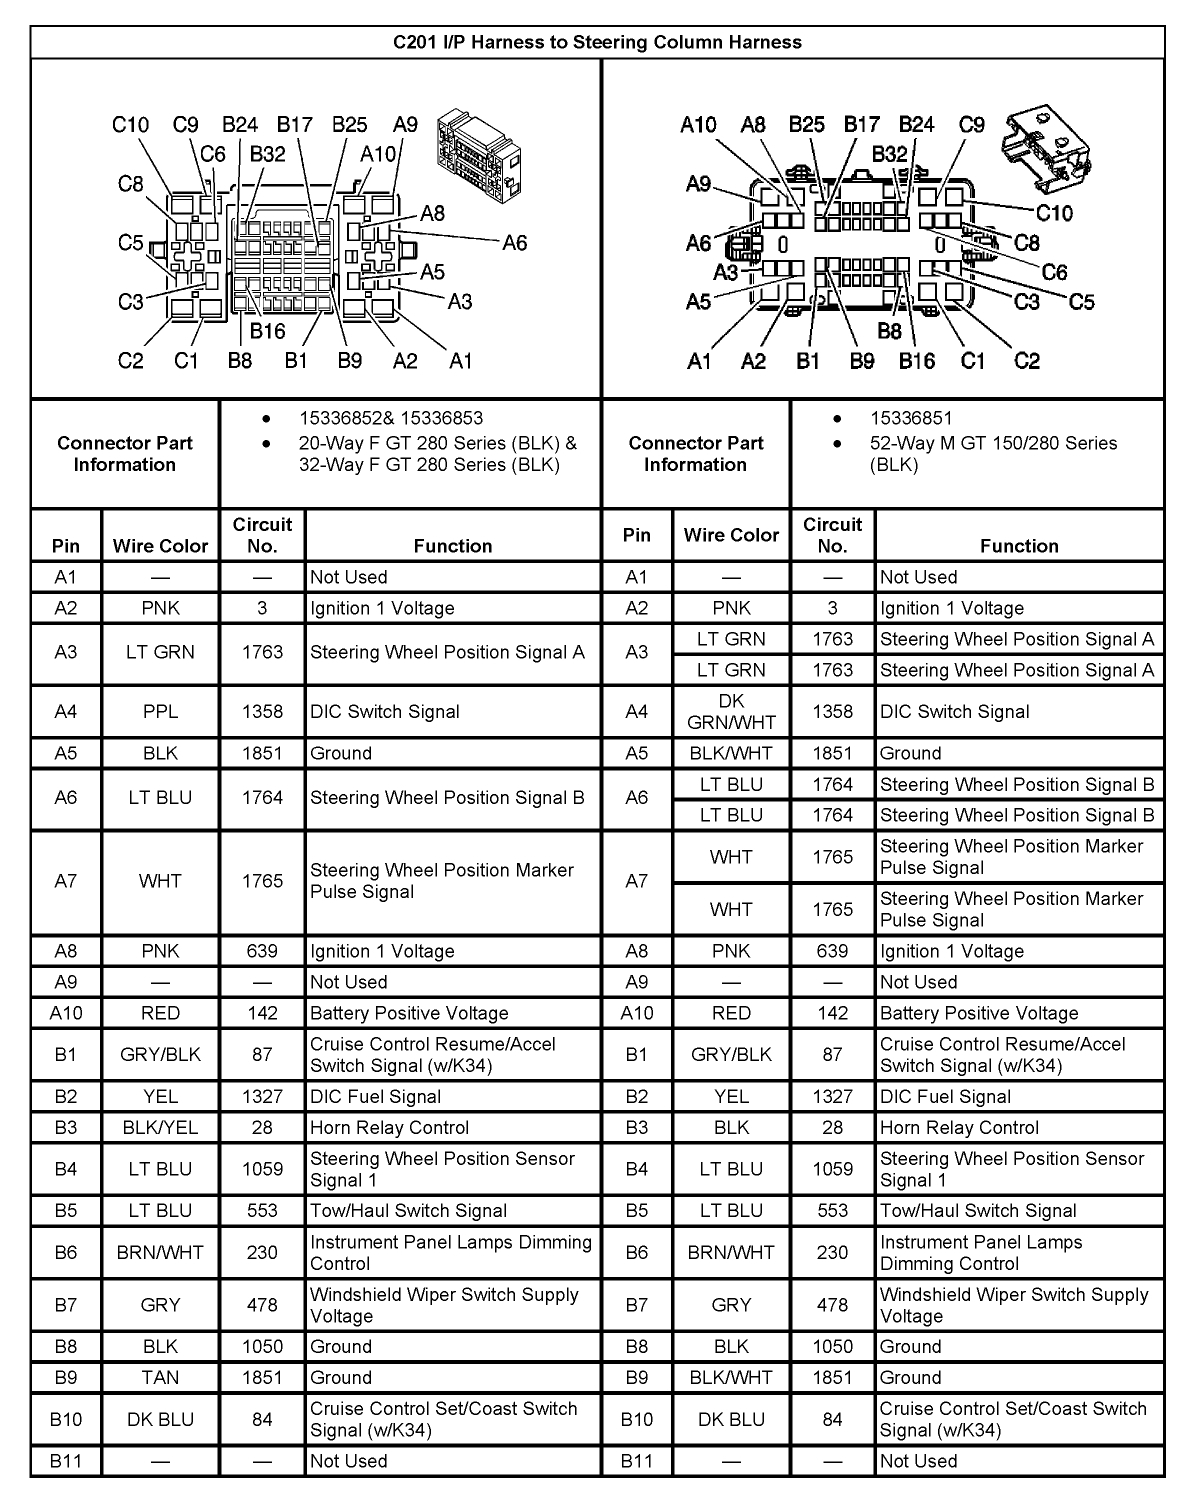 2004 chevy avalanche radio wiring diagram 2004 chevy bose radio wiring diagram 2003 gmc yukon bose radio wiring diagram | free wiring diagram #9